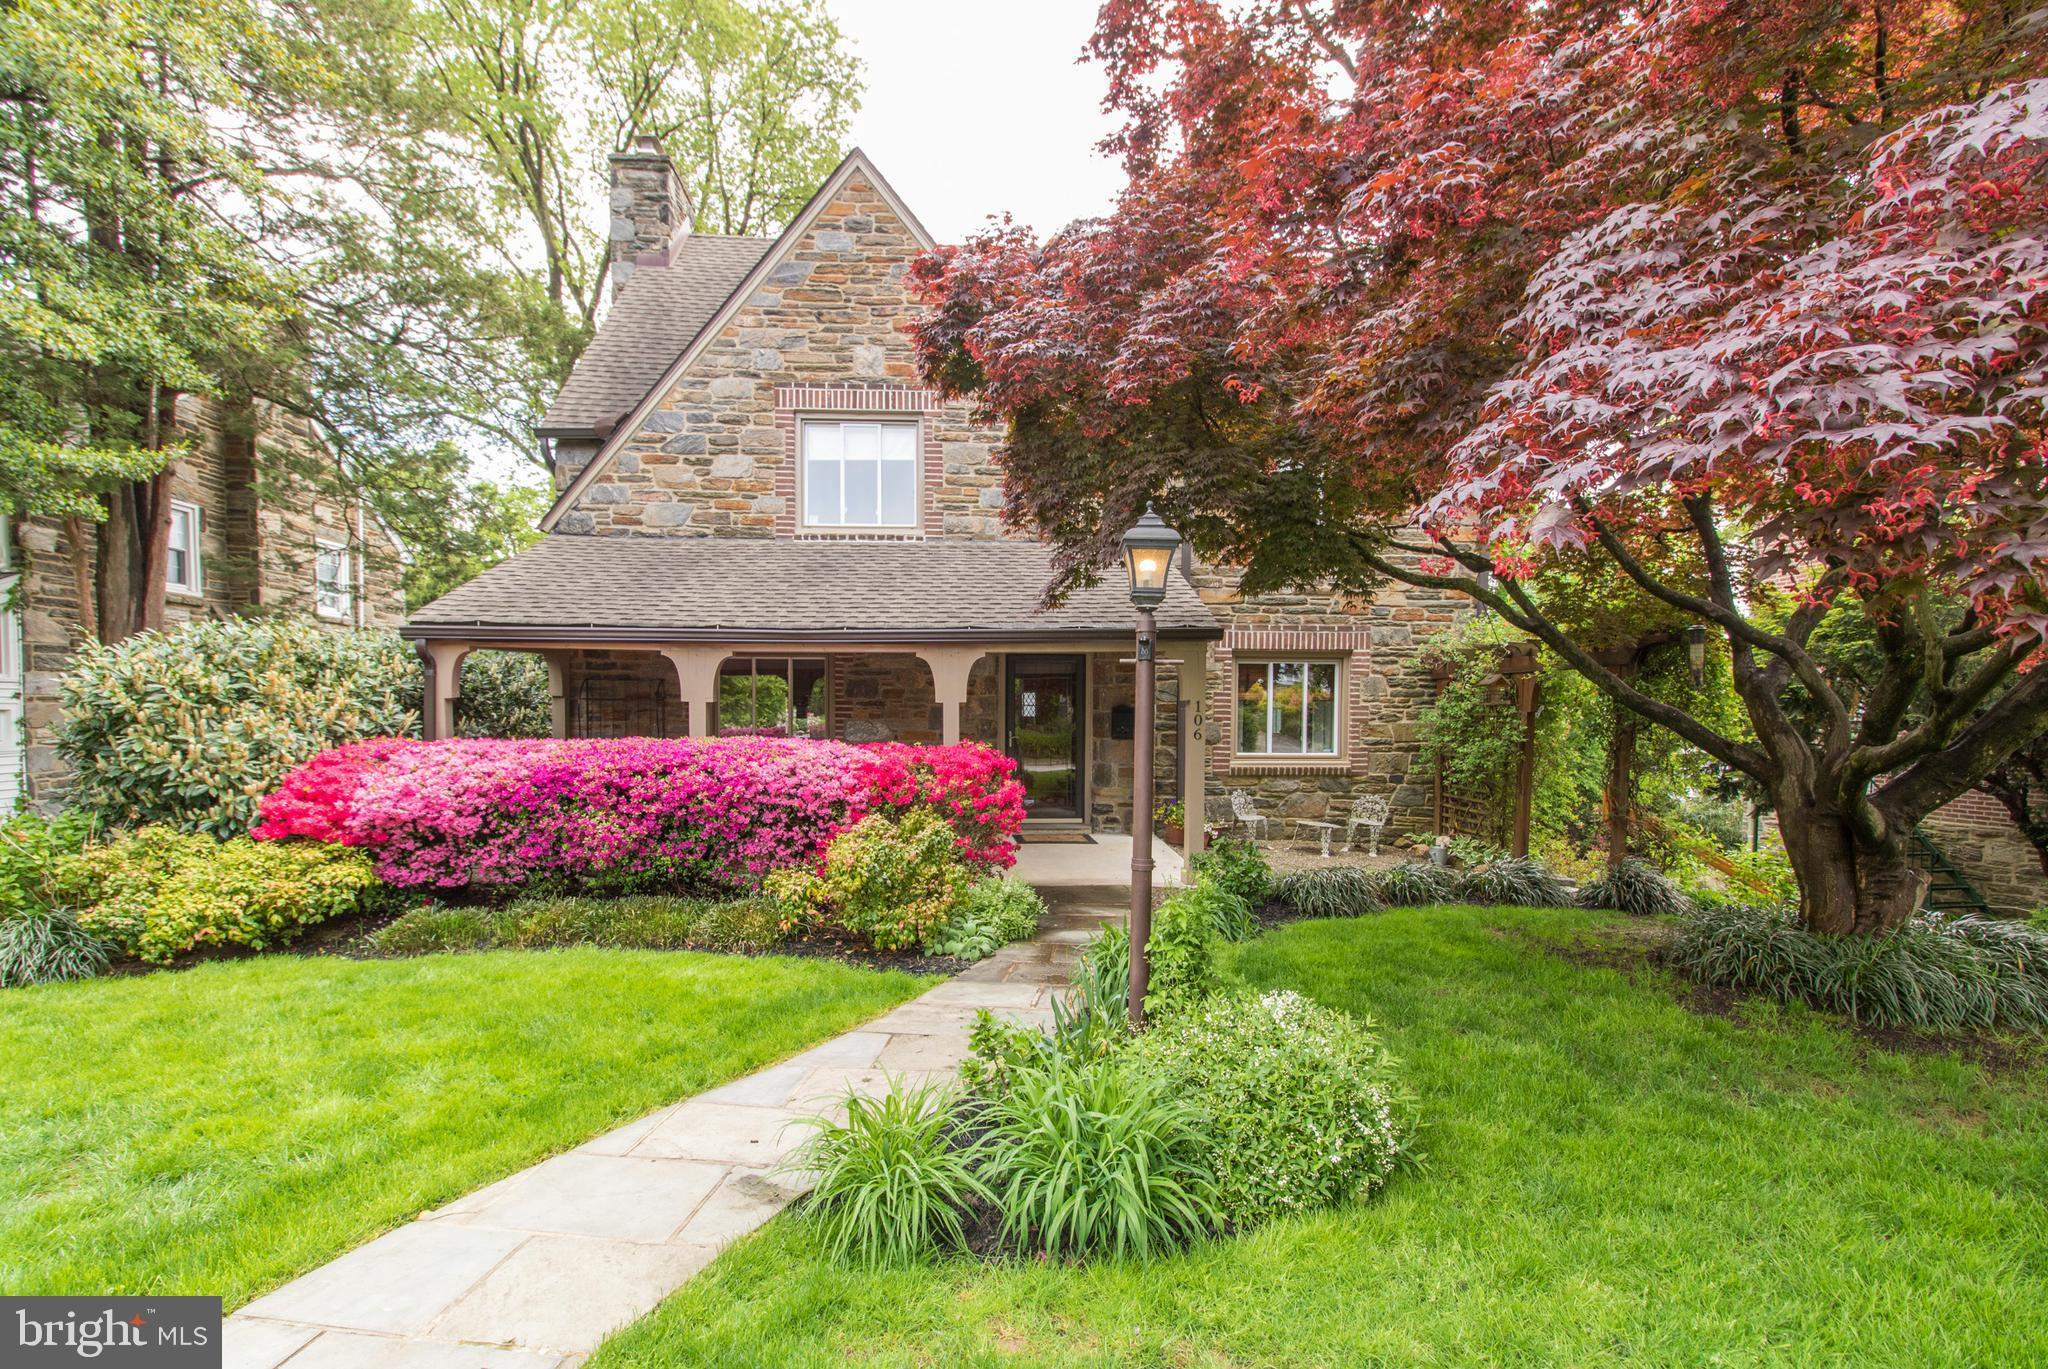 Welcome to the most walkable neighborhood in prestigious Bala Cynwyd, where  you are greeted by friends walking by. As you step inside this impressive Traditional Stone Colonial Home, you feel a sense of calm and warmth. Once inside you're struck by the magnificent well appointed home that holds the stories of years of Holiday celebrations and family milestones shared within the walls. This house has the perfect floor plan: great flow from room to room, finished basement, updated kitchen , outside deck. This deck has a stairway that goes down to the back yard. Entertain with ease in this lovely outdoor space. House has a front porch that is a great option to have your morning coffee or a glass of wine at night to see the neighbors passing by. Spacious living room with a wood burning fireplace. The dining room also has windows that let lots of light come through. There is a half bathroom on the first floor. The tastefully done kitchen with beautiful quartz countertops, and a handmade tile backsplash add a touch of class.  On the second floor you can find three bedrooms. One bedroom has built-ins that includes beds, closet and a desk. The second bedroom is large enough to fit a queen or king size bed and also has amazing light from the windows. The primary bedroom has a ceiling fan and a beautiful in suite bathroom. The third floor offers you the flexibility to create the space you need for today; fourth bedroom, playroom, office, or exercise space. The basement leads to a 1.5 car attached garage with plenty of storage space. You will notice the new HVAC system, gas furnace, and water tank - in addition, a new gas line has been installed for use in the kitchen. This house has it all! It is located in Lower Merion School District, Merion Elementary, and Bala Cynwyd Middle Schools. Easy walk to the train station, library, playgrounds, restaurants, and much more! Now is your chance to make this house your next home! Get your best Mother's Day Present ever! Don't let this